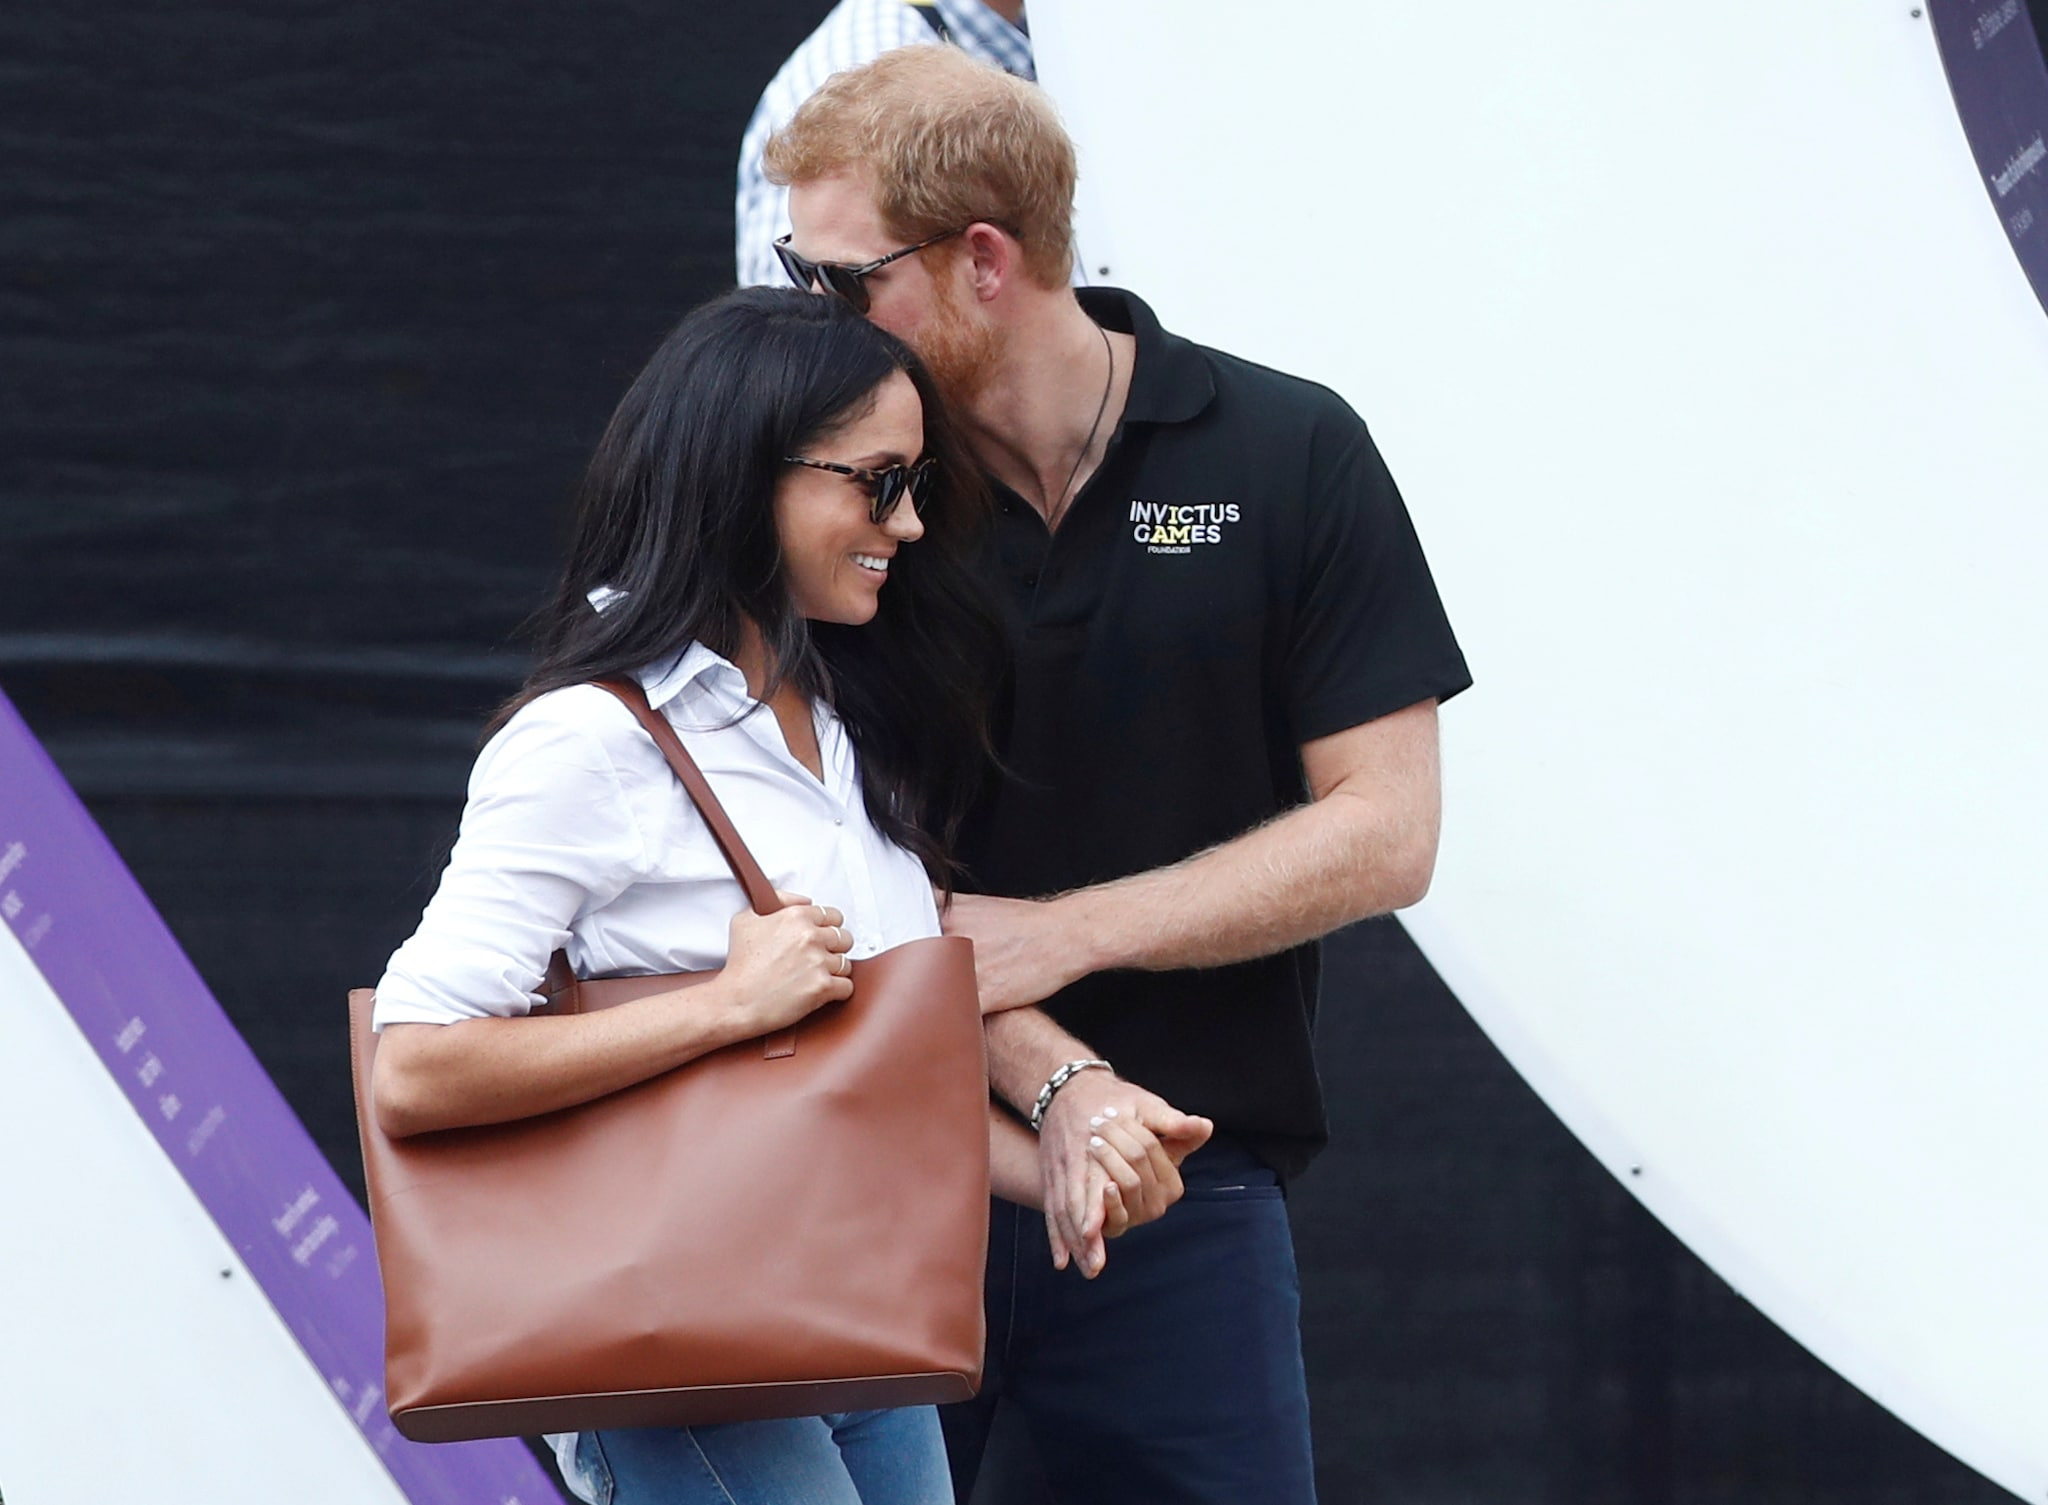 Prince Harry arrives with girlfriend actress Meghan Markle at the wheelchair tennis event during the Invictus Games in Toronto, Canada, September 25, 2017. REUTERS/Mark Blinch